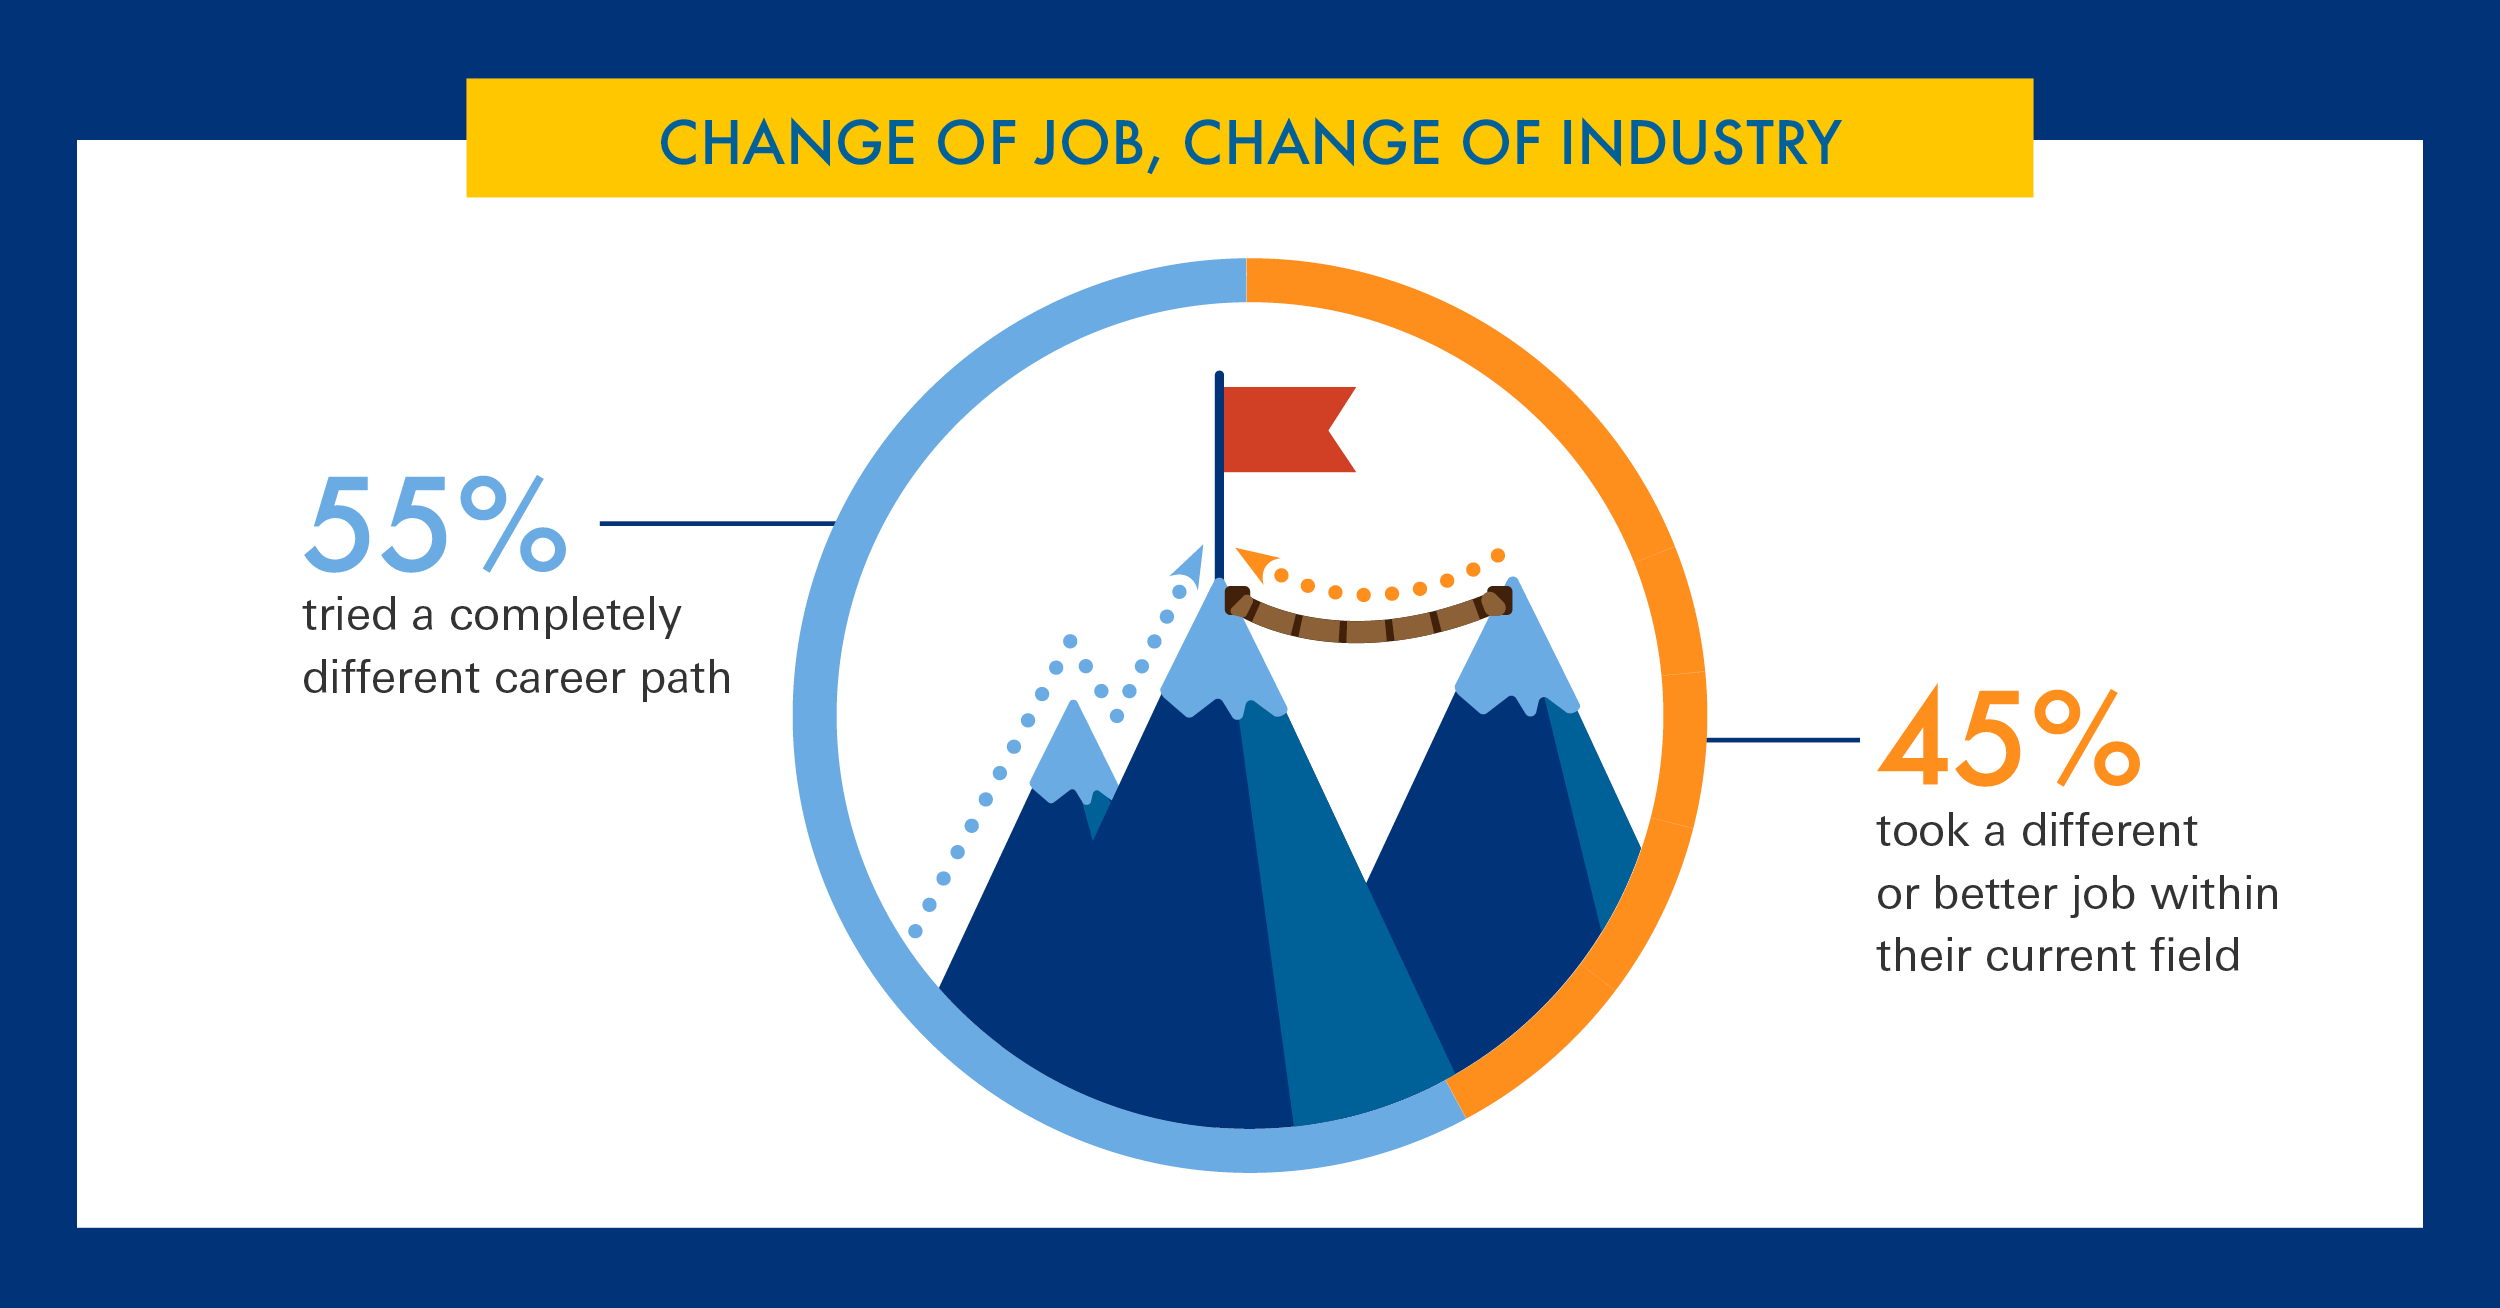 Change of job, change of industry. 55% of people tried a completely different career path.